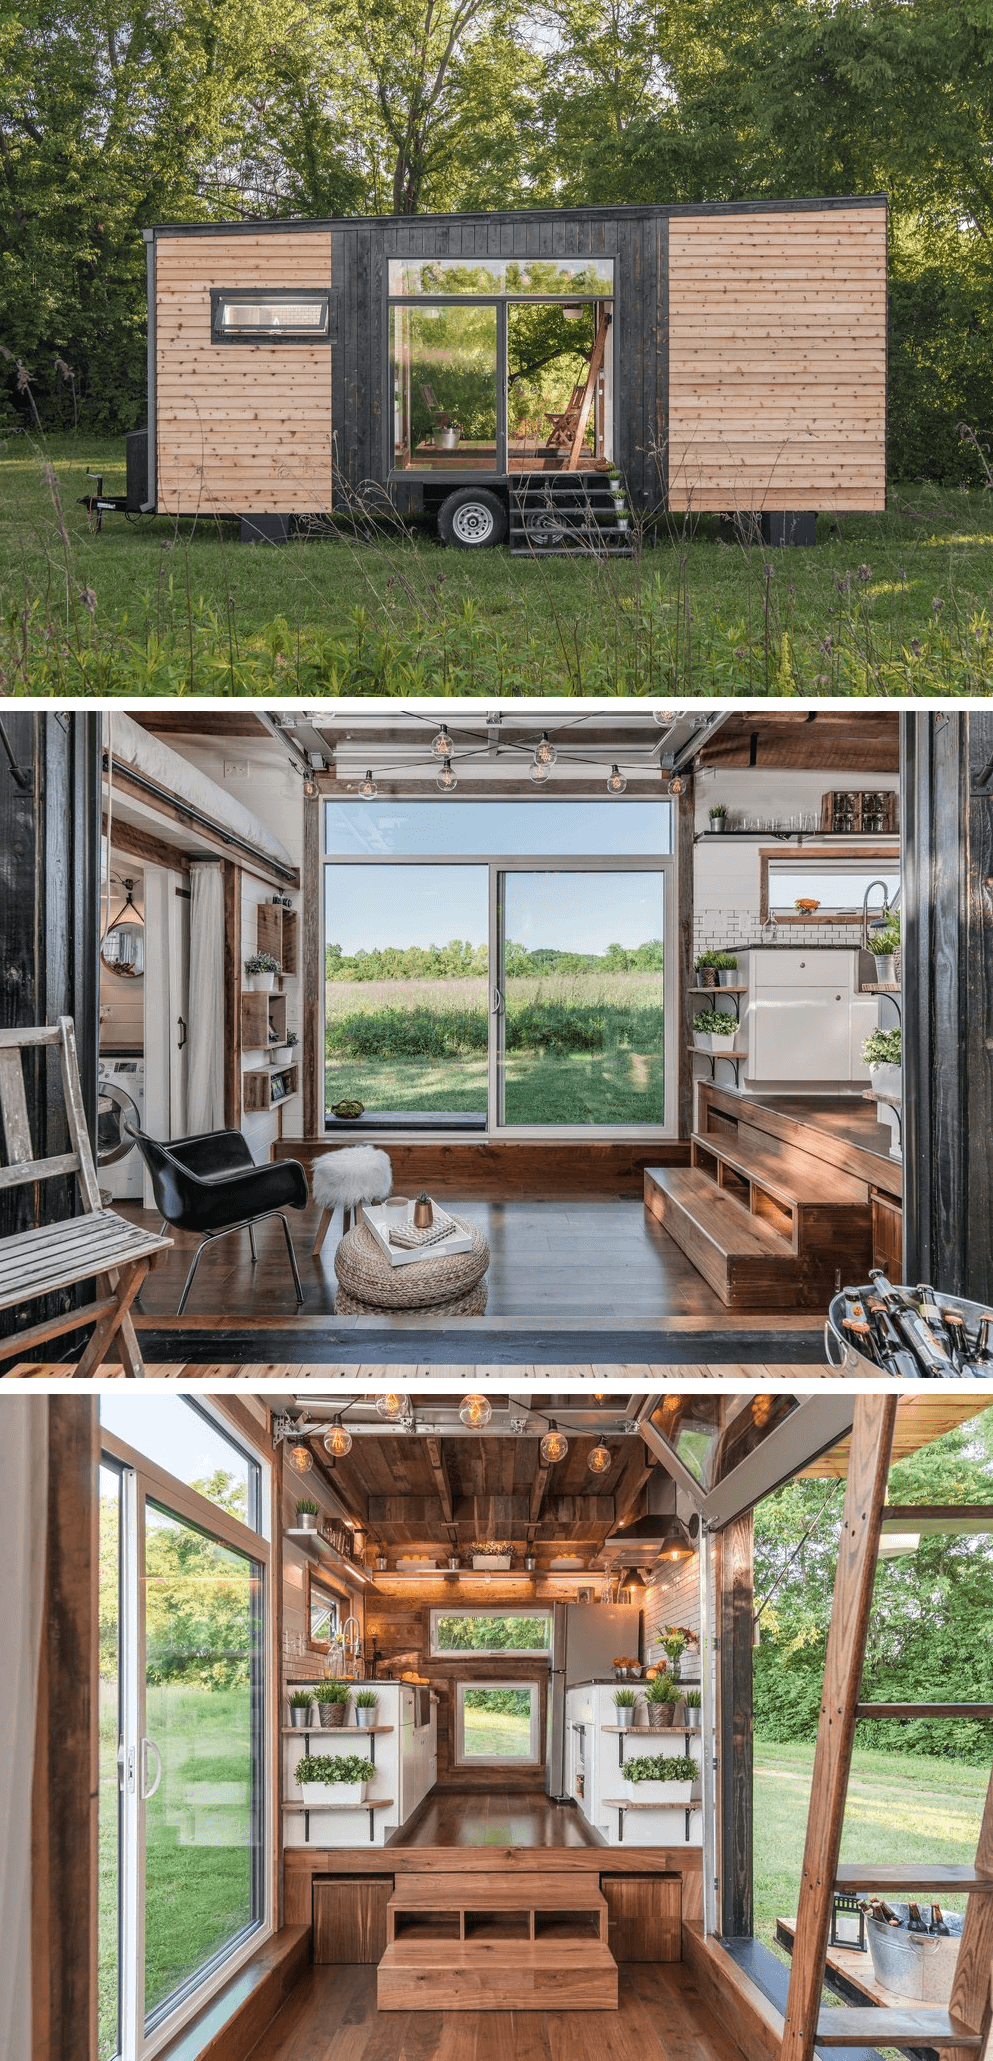 Alpha tiny house on wheels design ideas